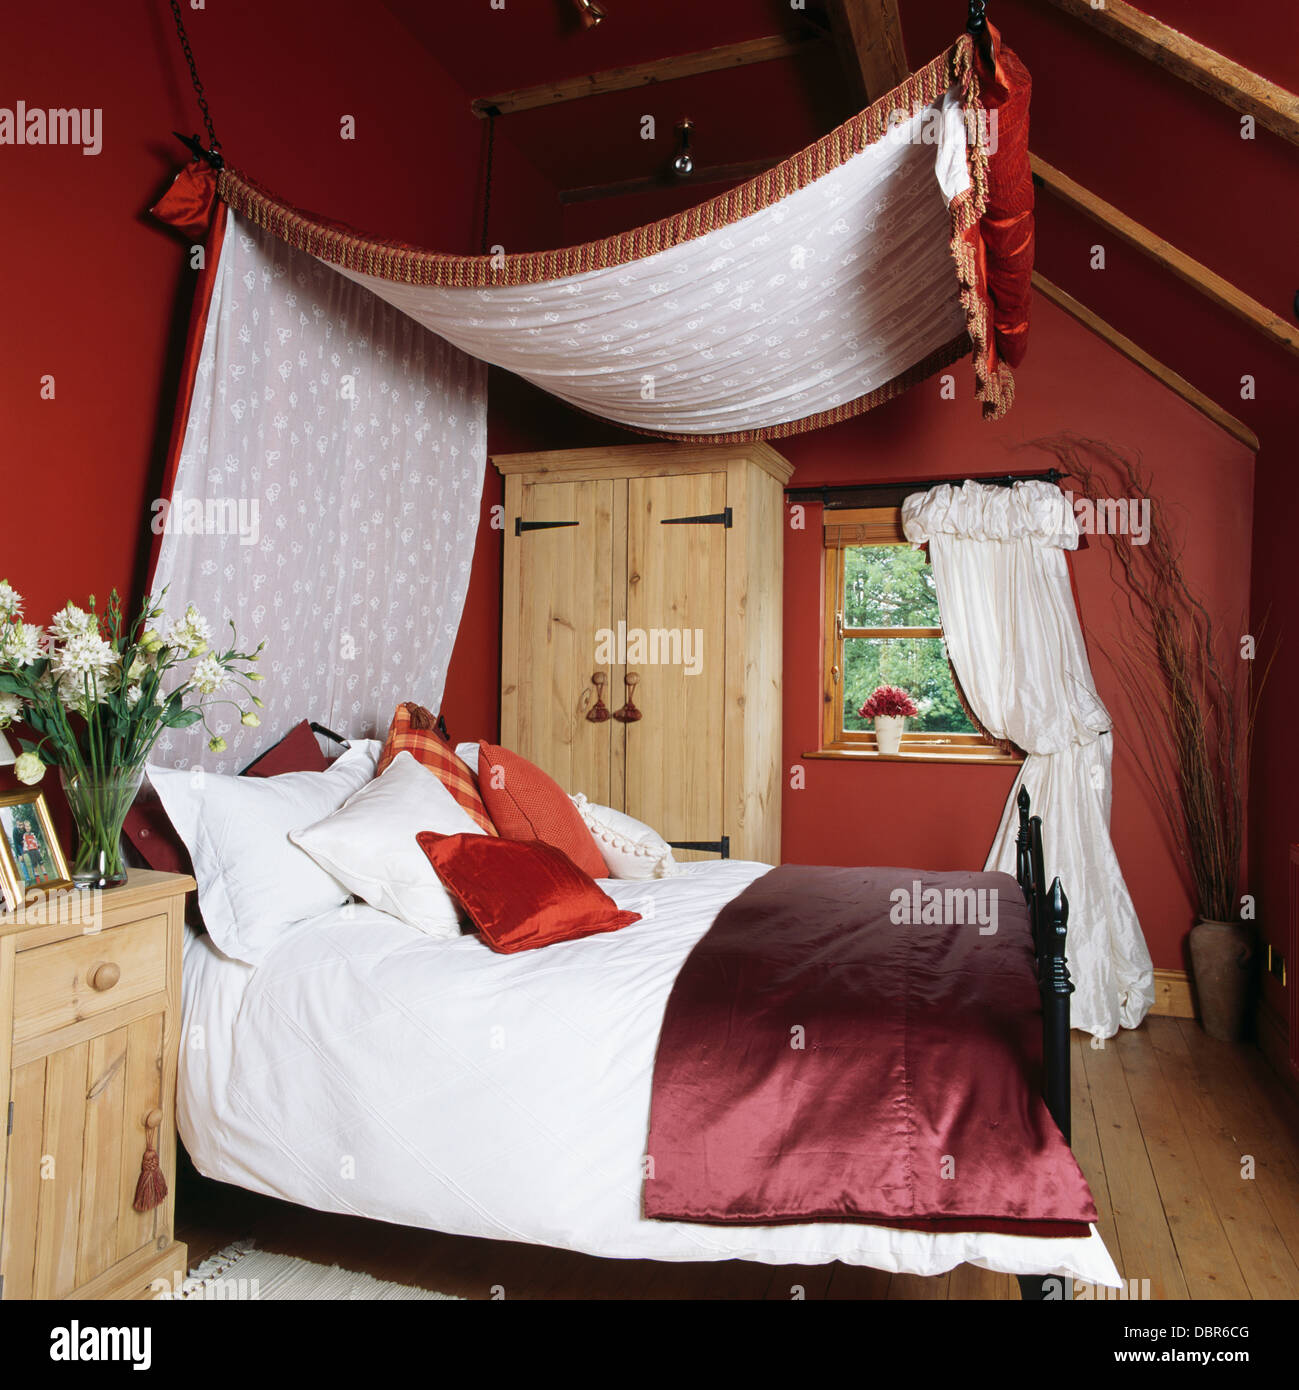 canopy with white voile lining above bed with white duvet and red satin throw in red attic bedroom in country cottage